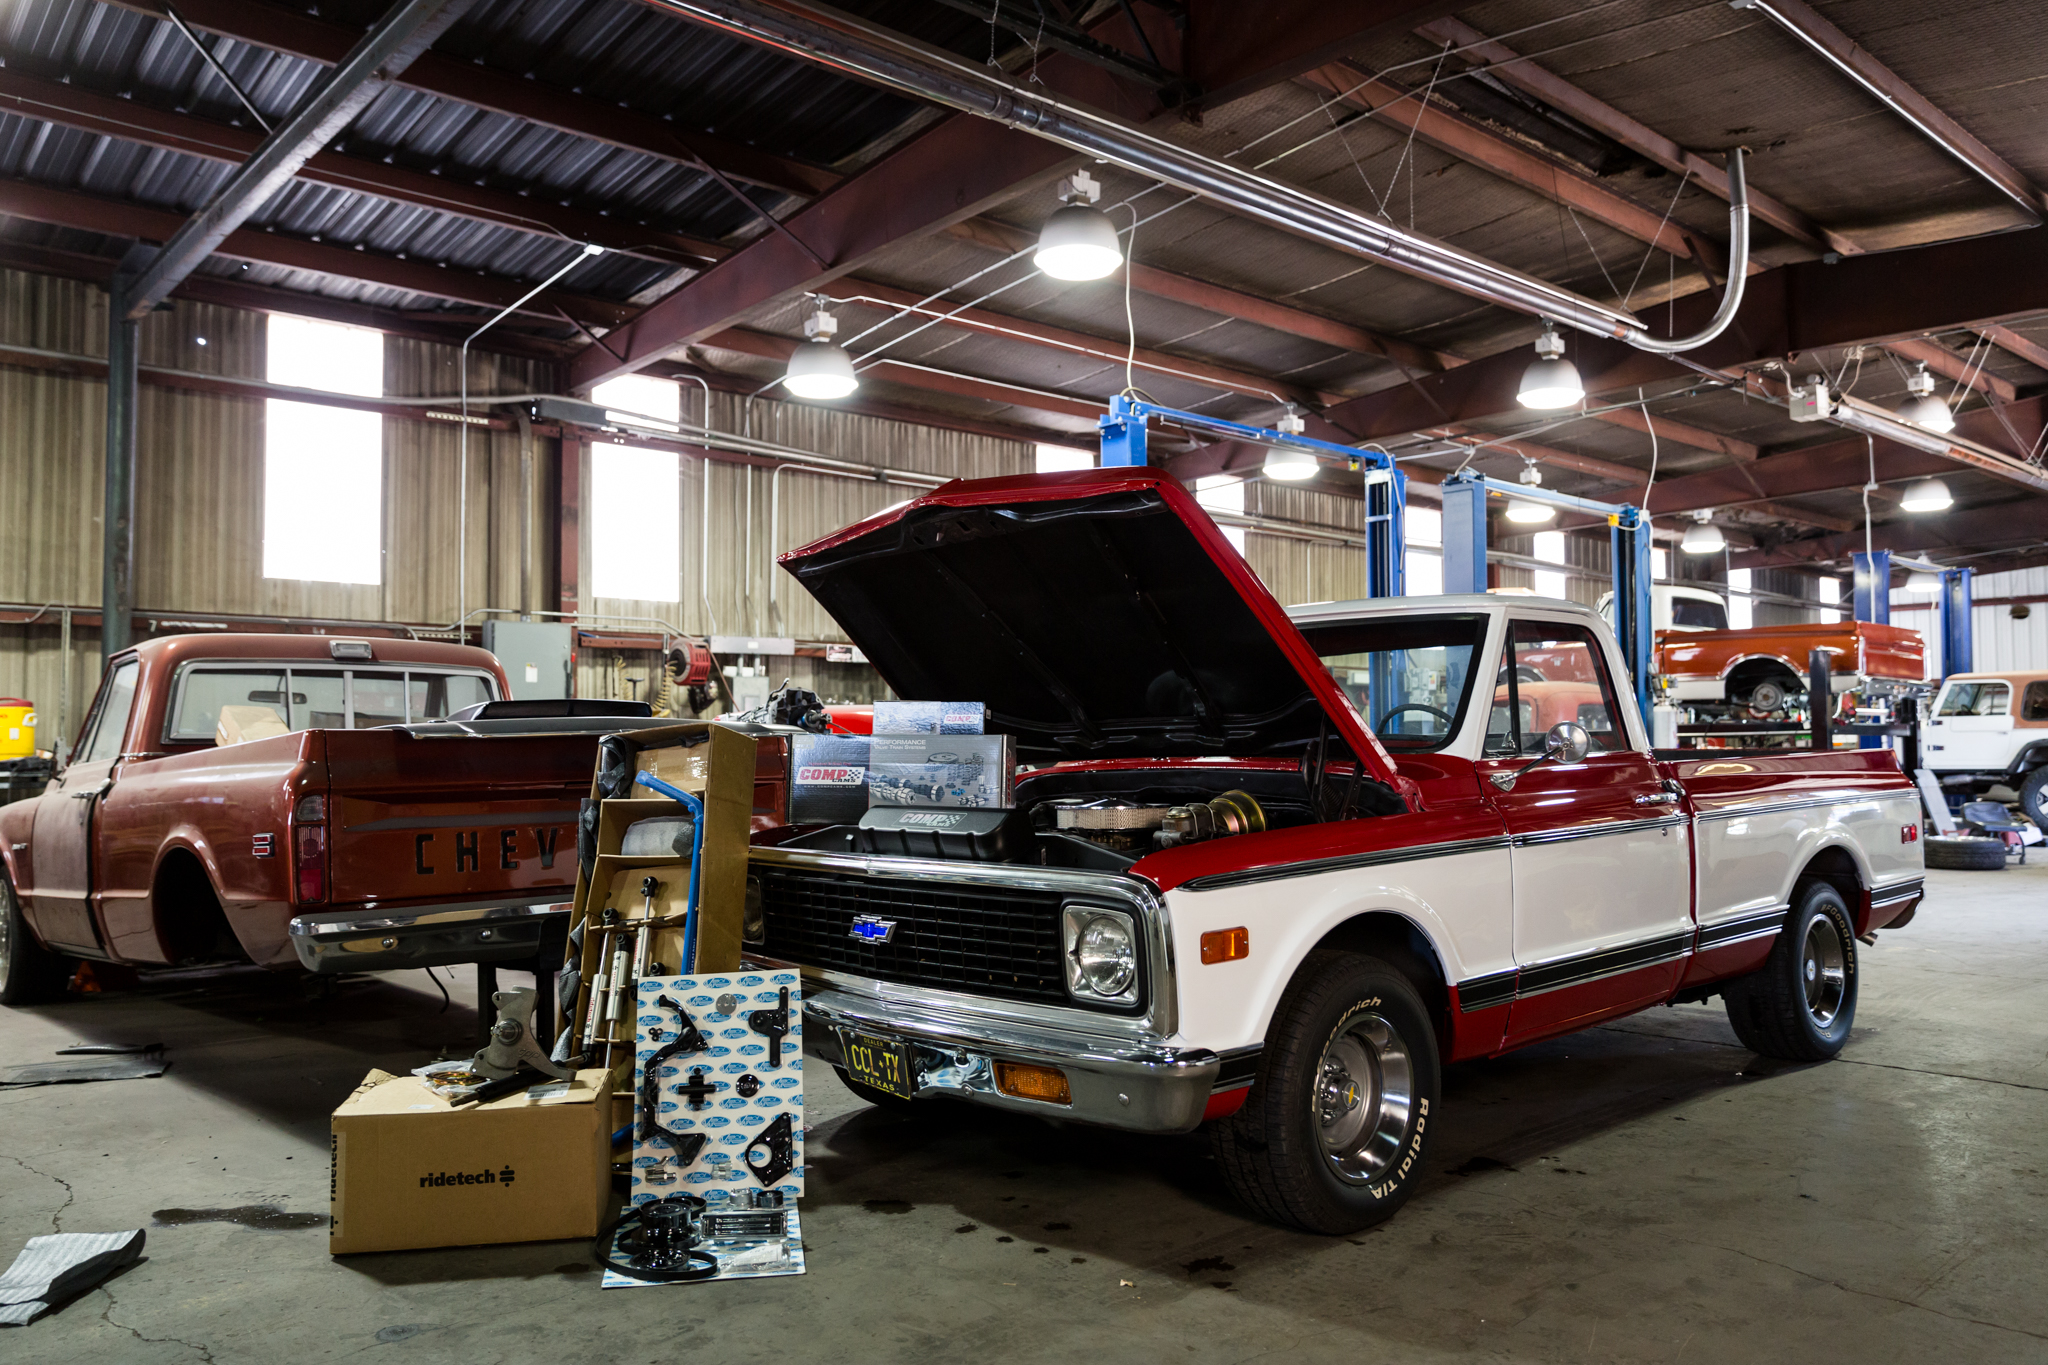 Suspension Install: This 1971 Chevy C10 Gets A Stance, Handling And Fun Upgrade With RideTech StreetGrip!